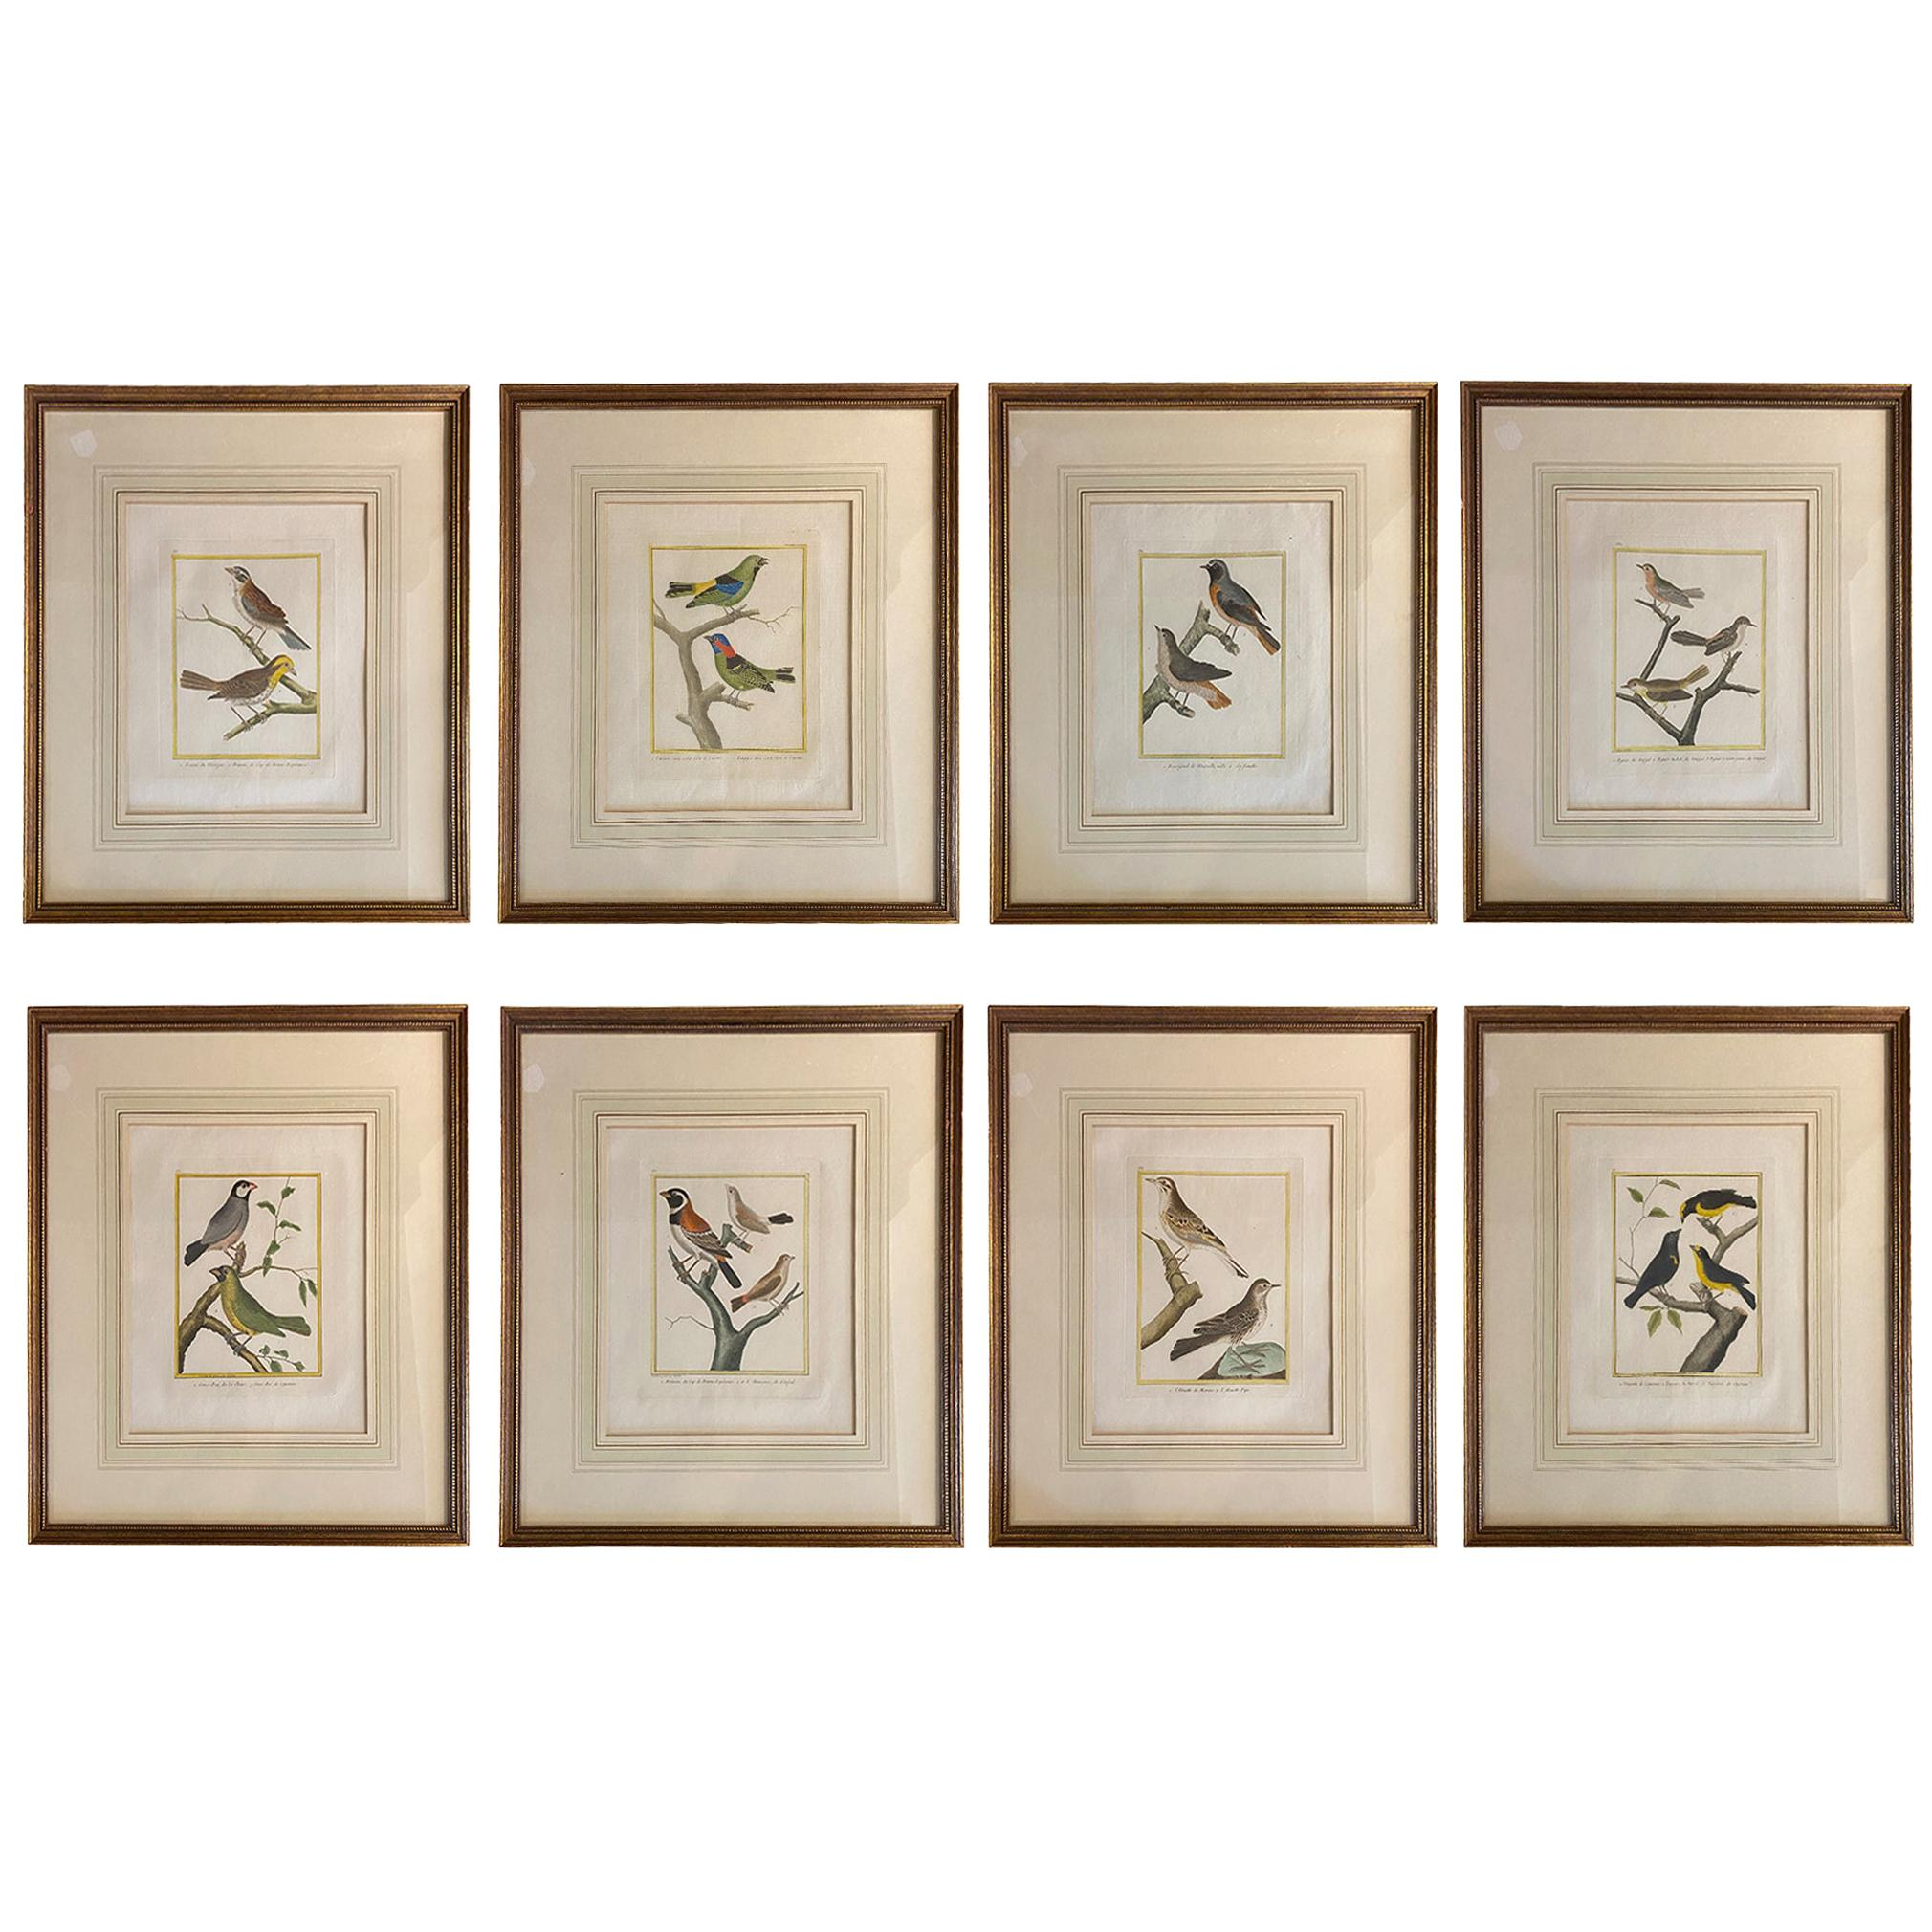 Eight Framed Hand Colored Engravings of Birds by Martinet